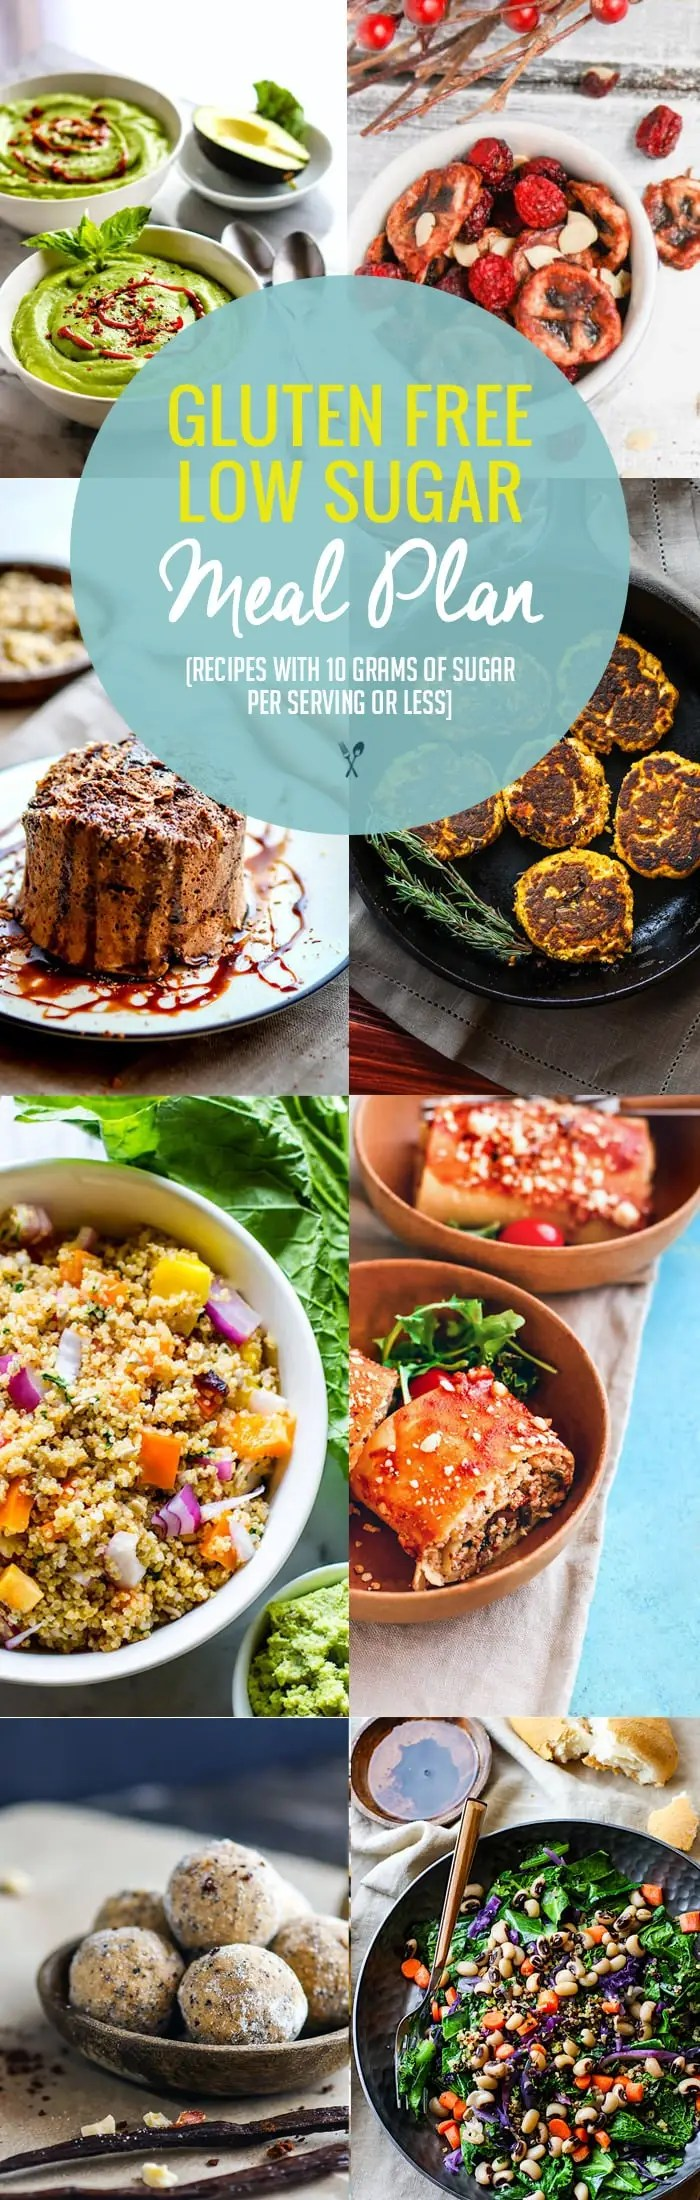 Healthy Lower Sugar Gluten Free Meal Plan Recipes! Snacks/Meals with less than 10 grams sugar per serving. Easy gluten free meal plan ideas to boost health without added sugar or preservatives